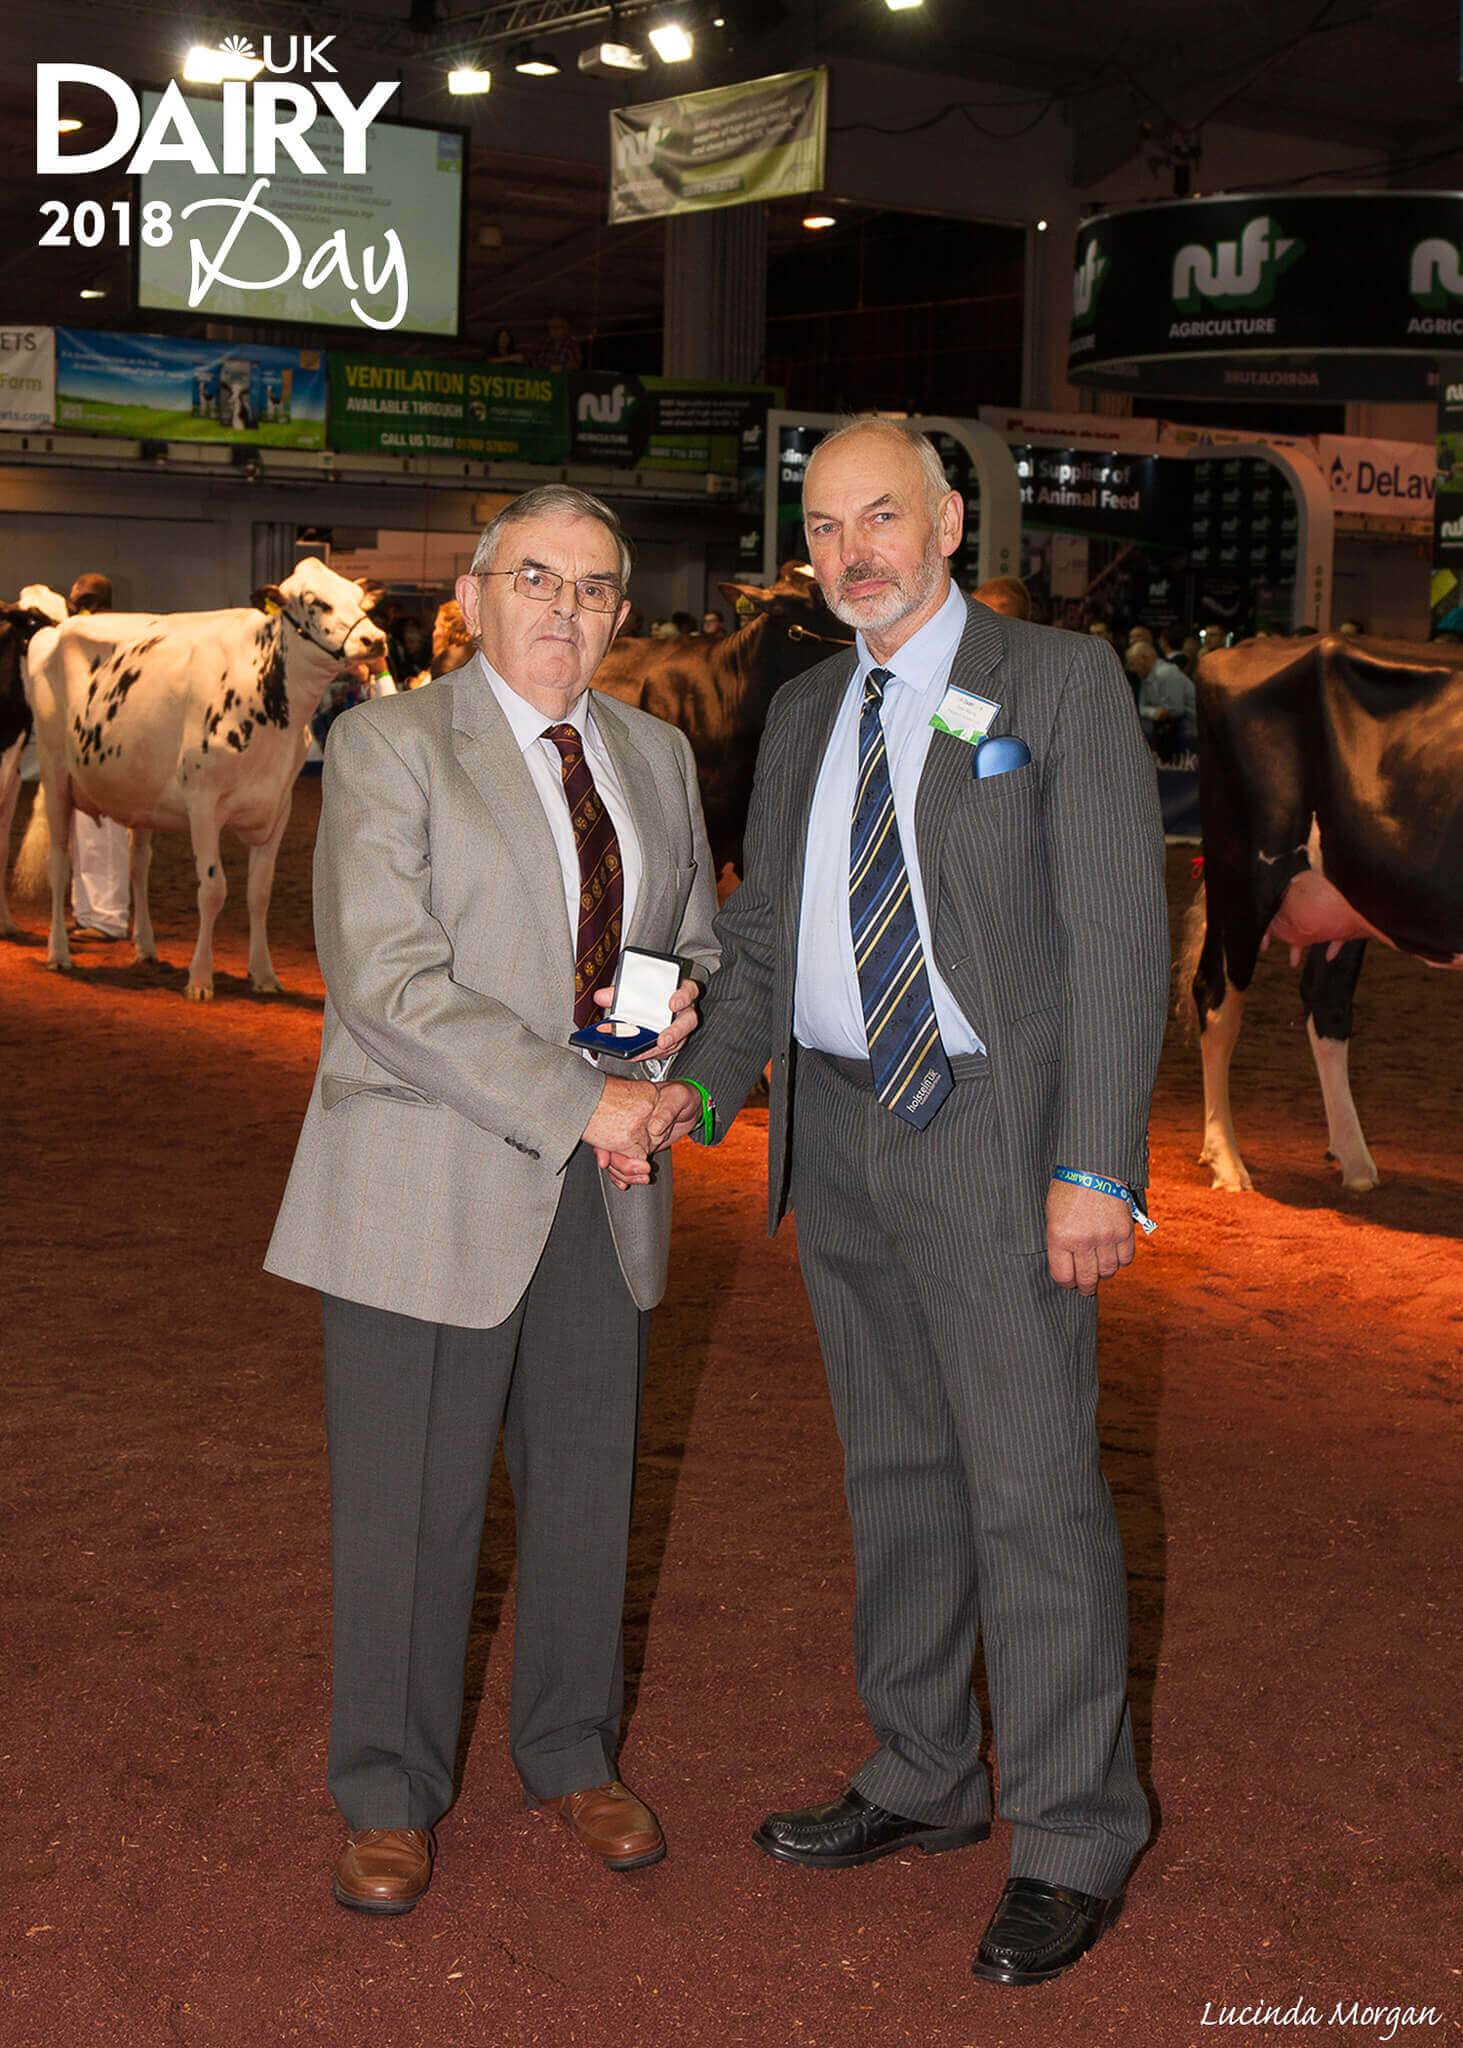 Photograph: Mr Keith Davies being presented with his Distinguished Service award by Holstein UK President Peter Waring.